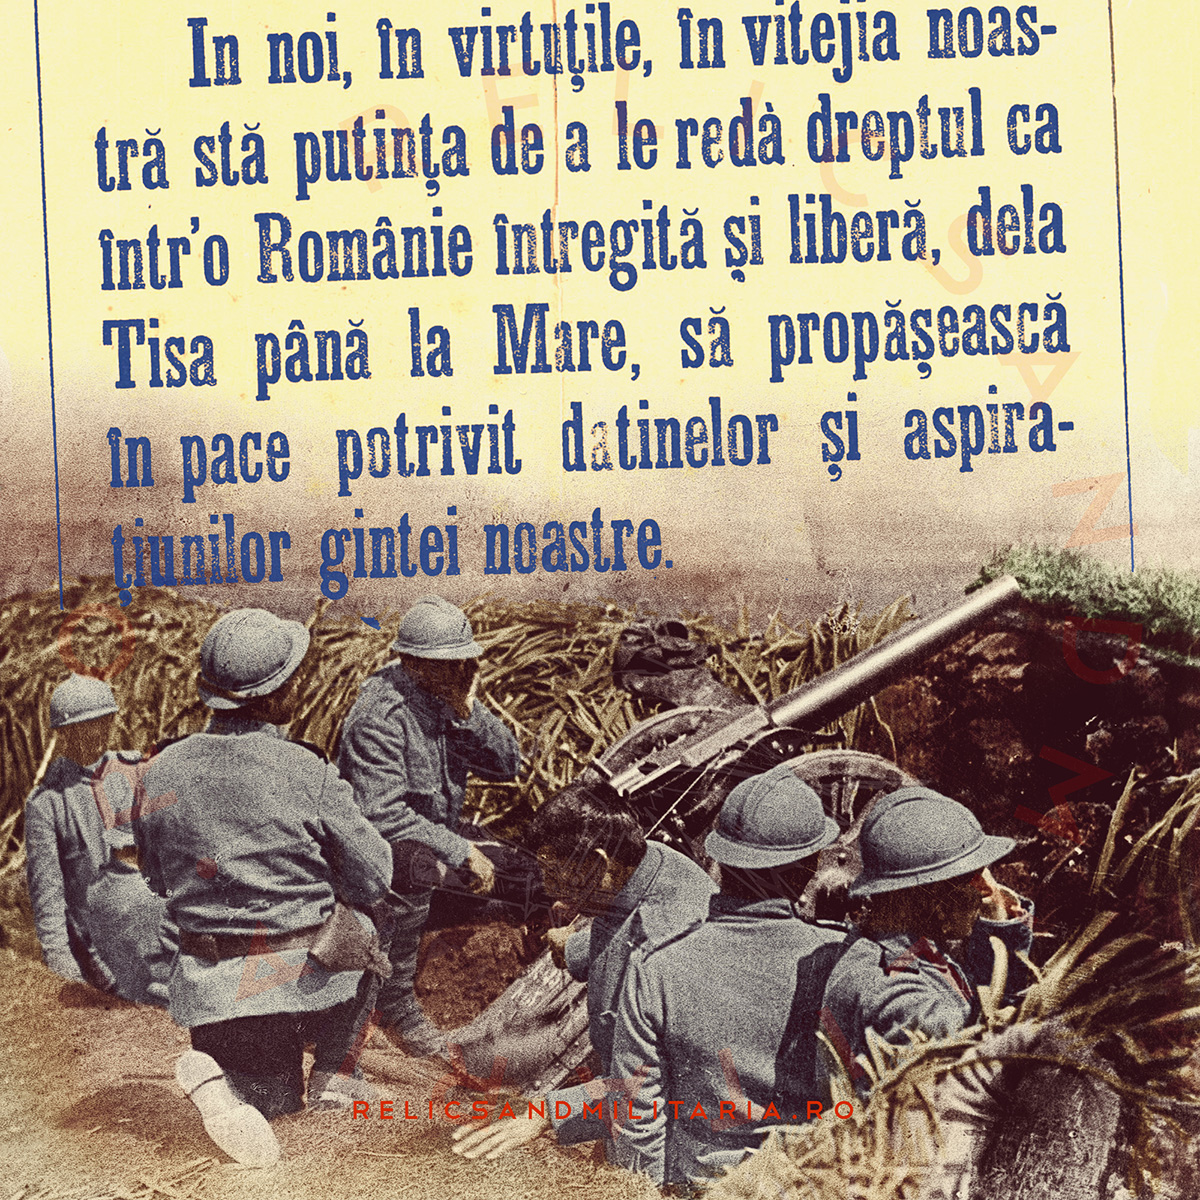 Romanian soldiers in trench ww1